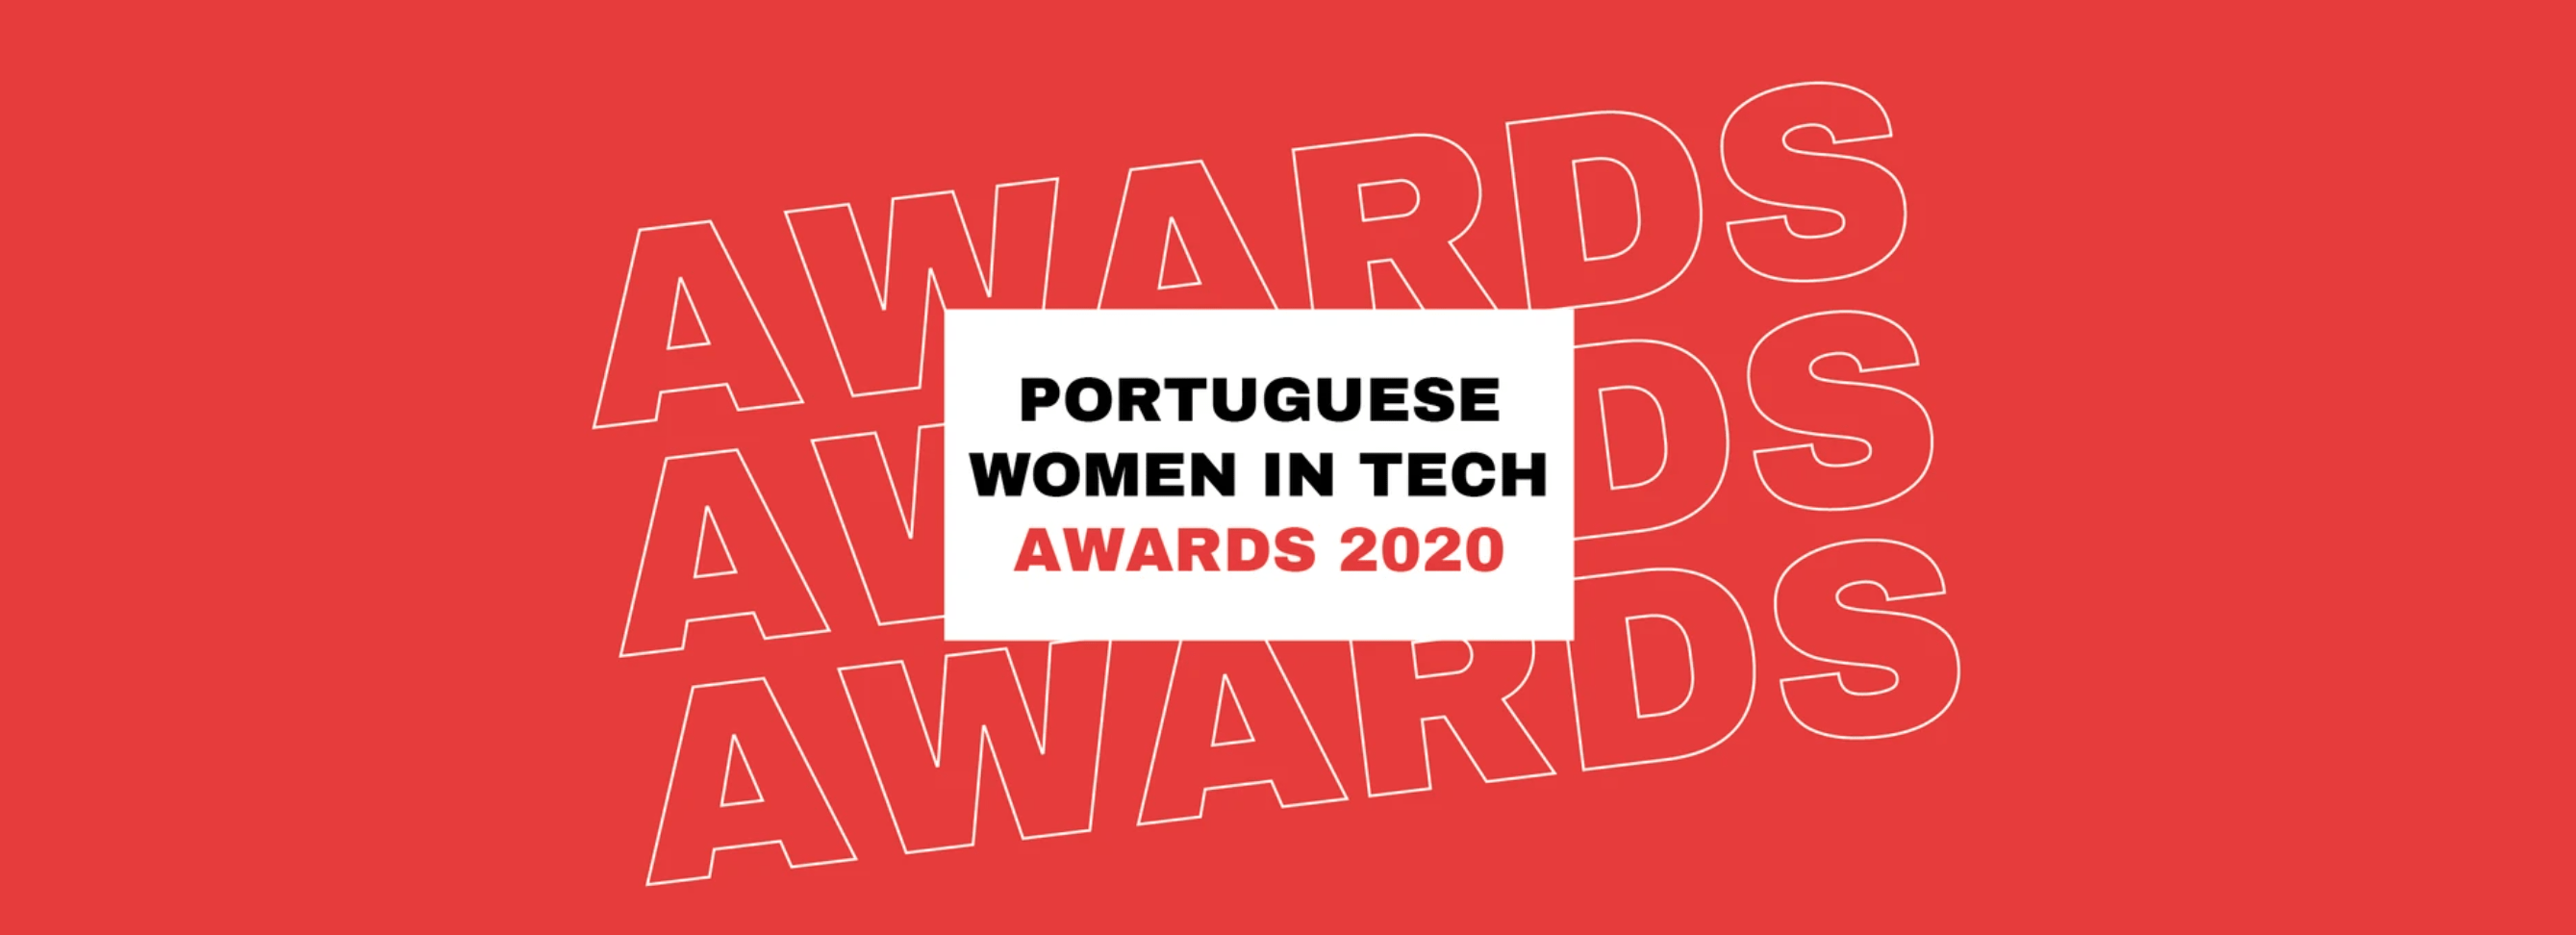 beatriz-oliveira-awarded-founder-of-the-year-by-portuguese-women-in-technology